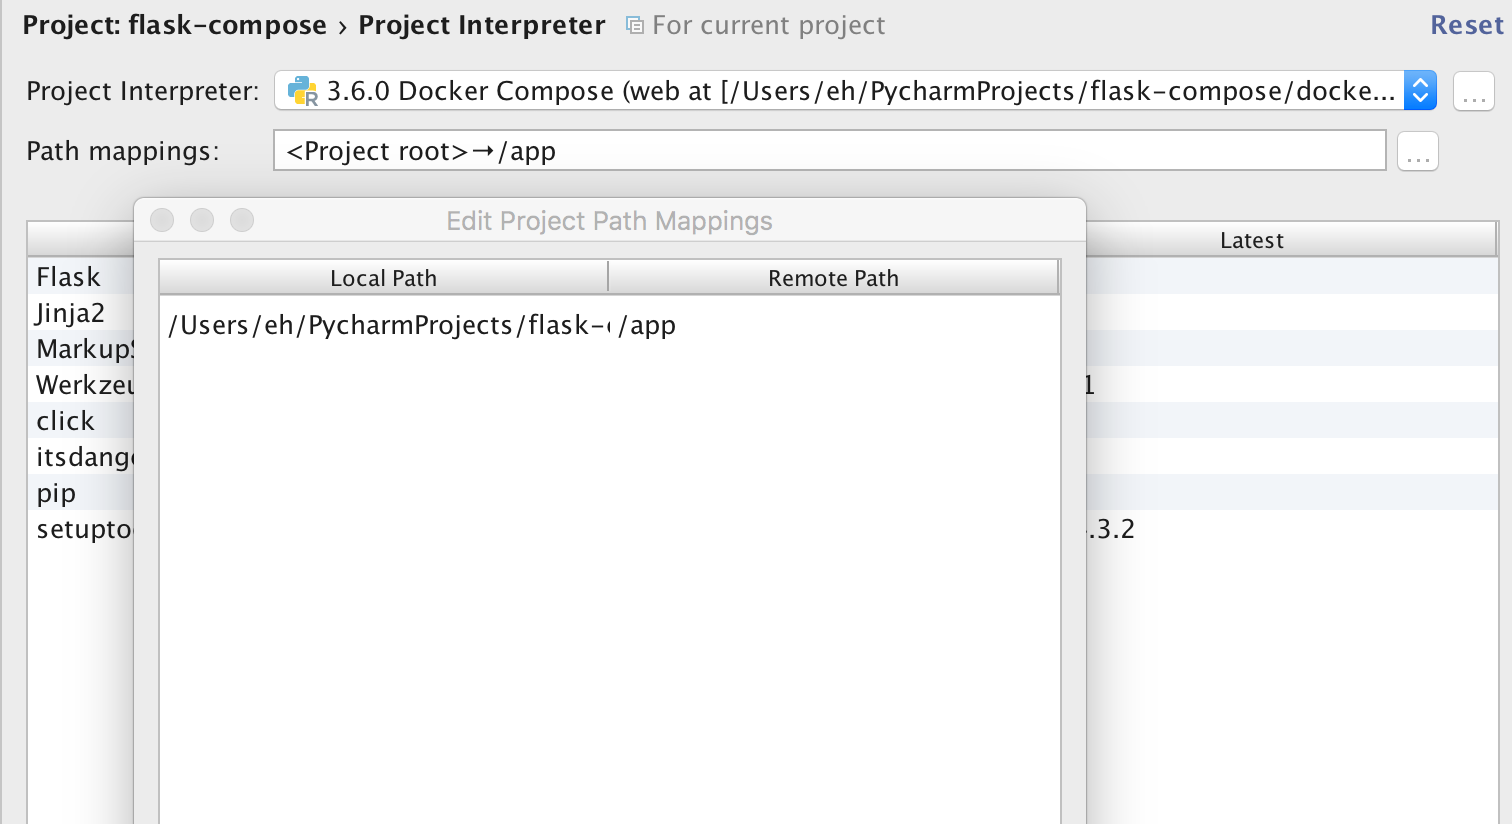 Path mappings